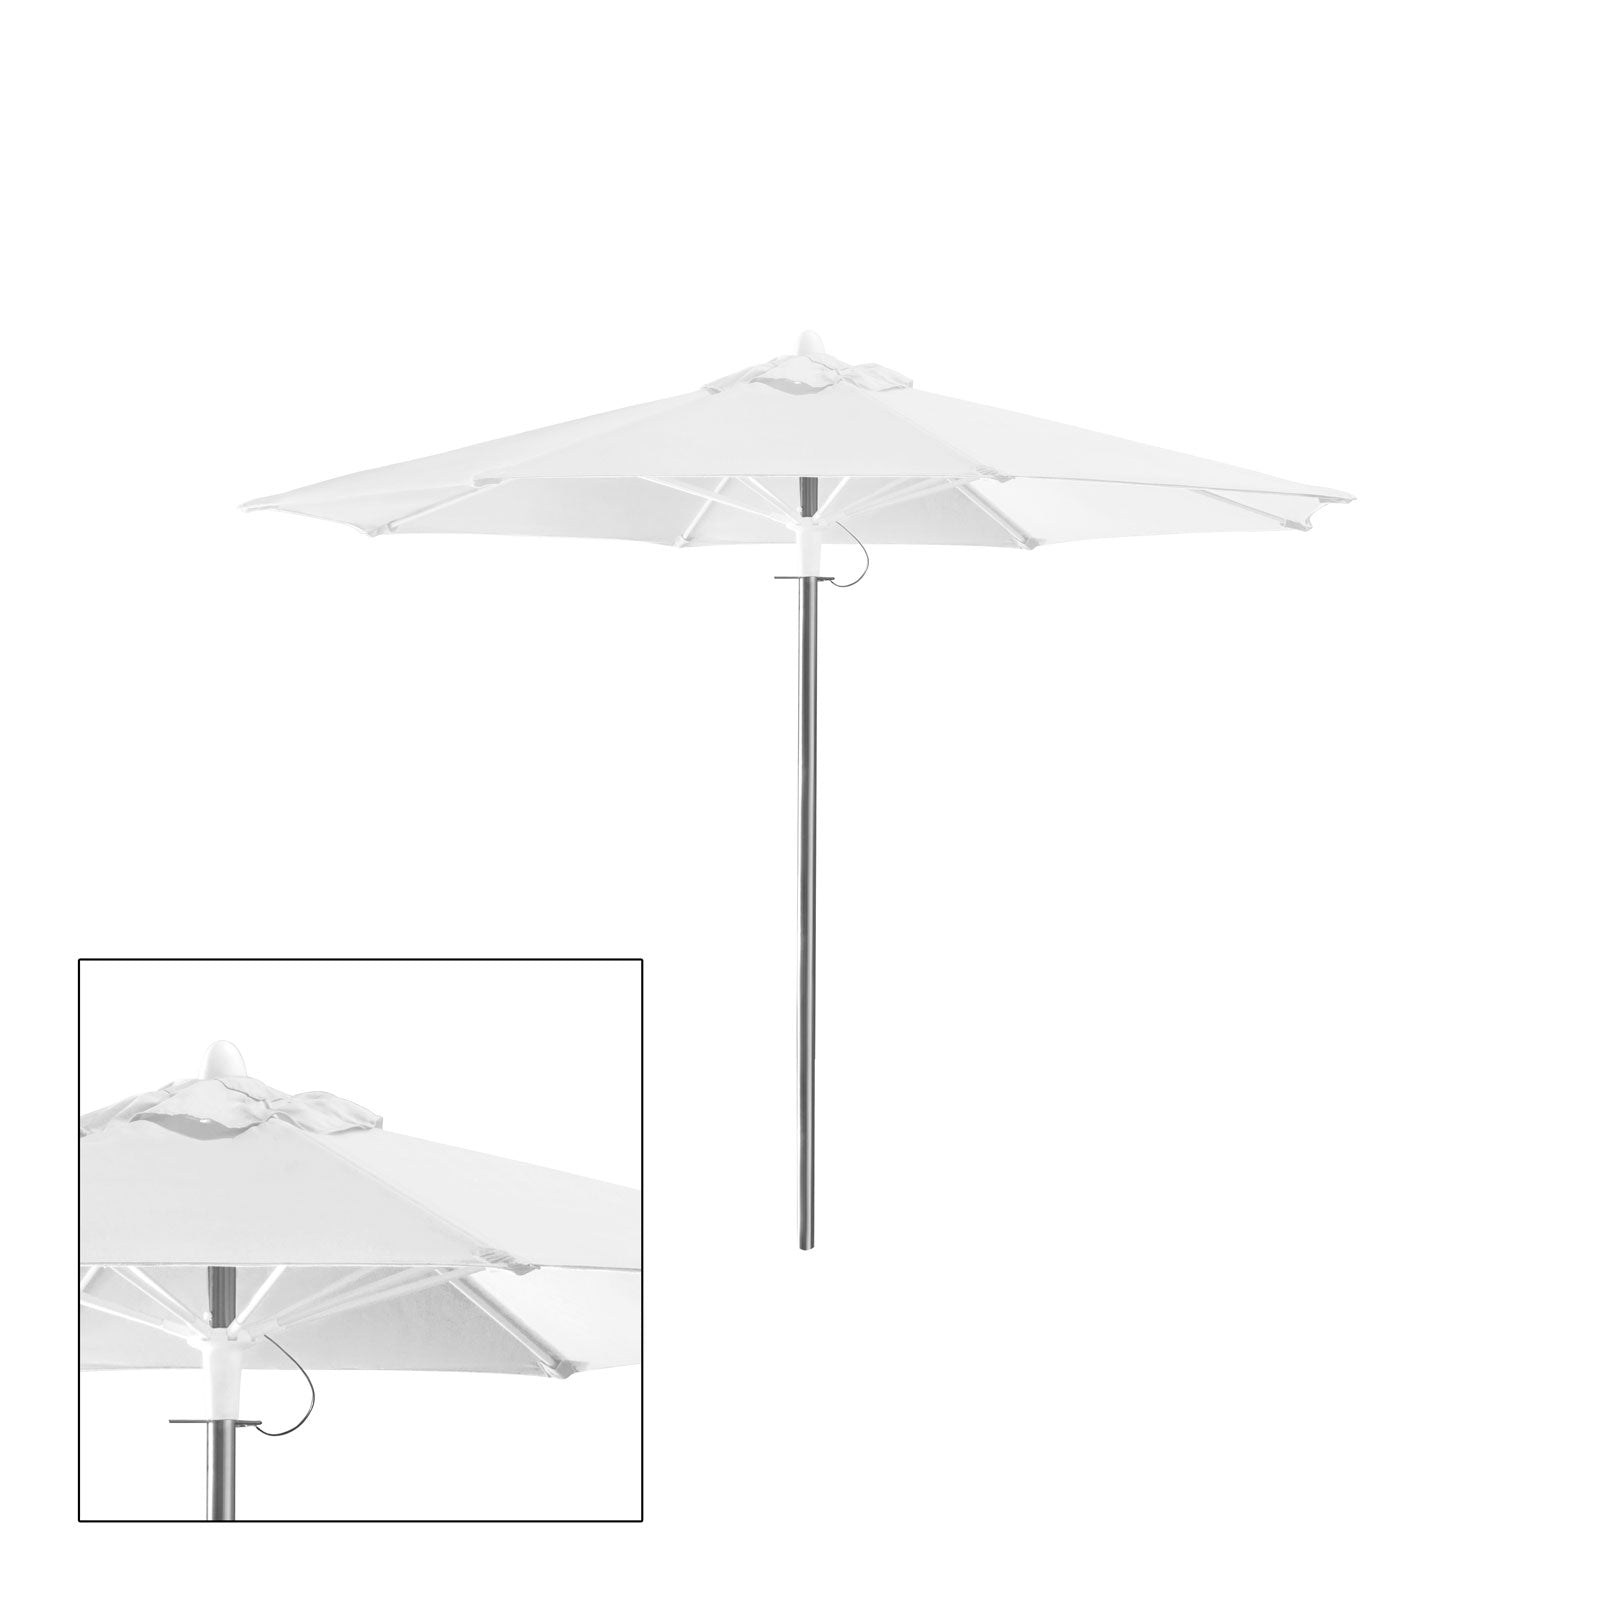 Source Furniture Source Furniture Rio 8' Round Single Vented Umbrella - Rattan Imports